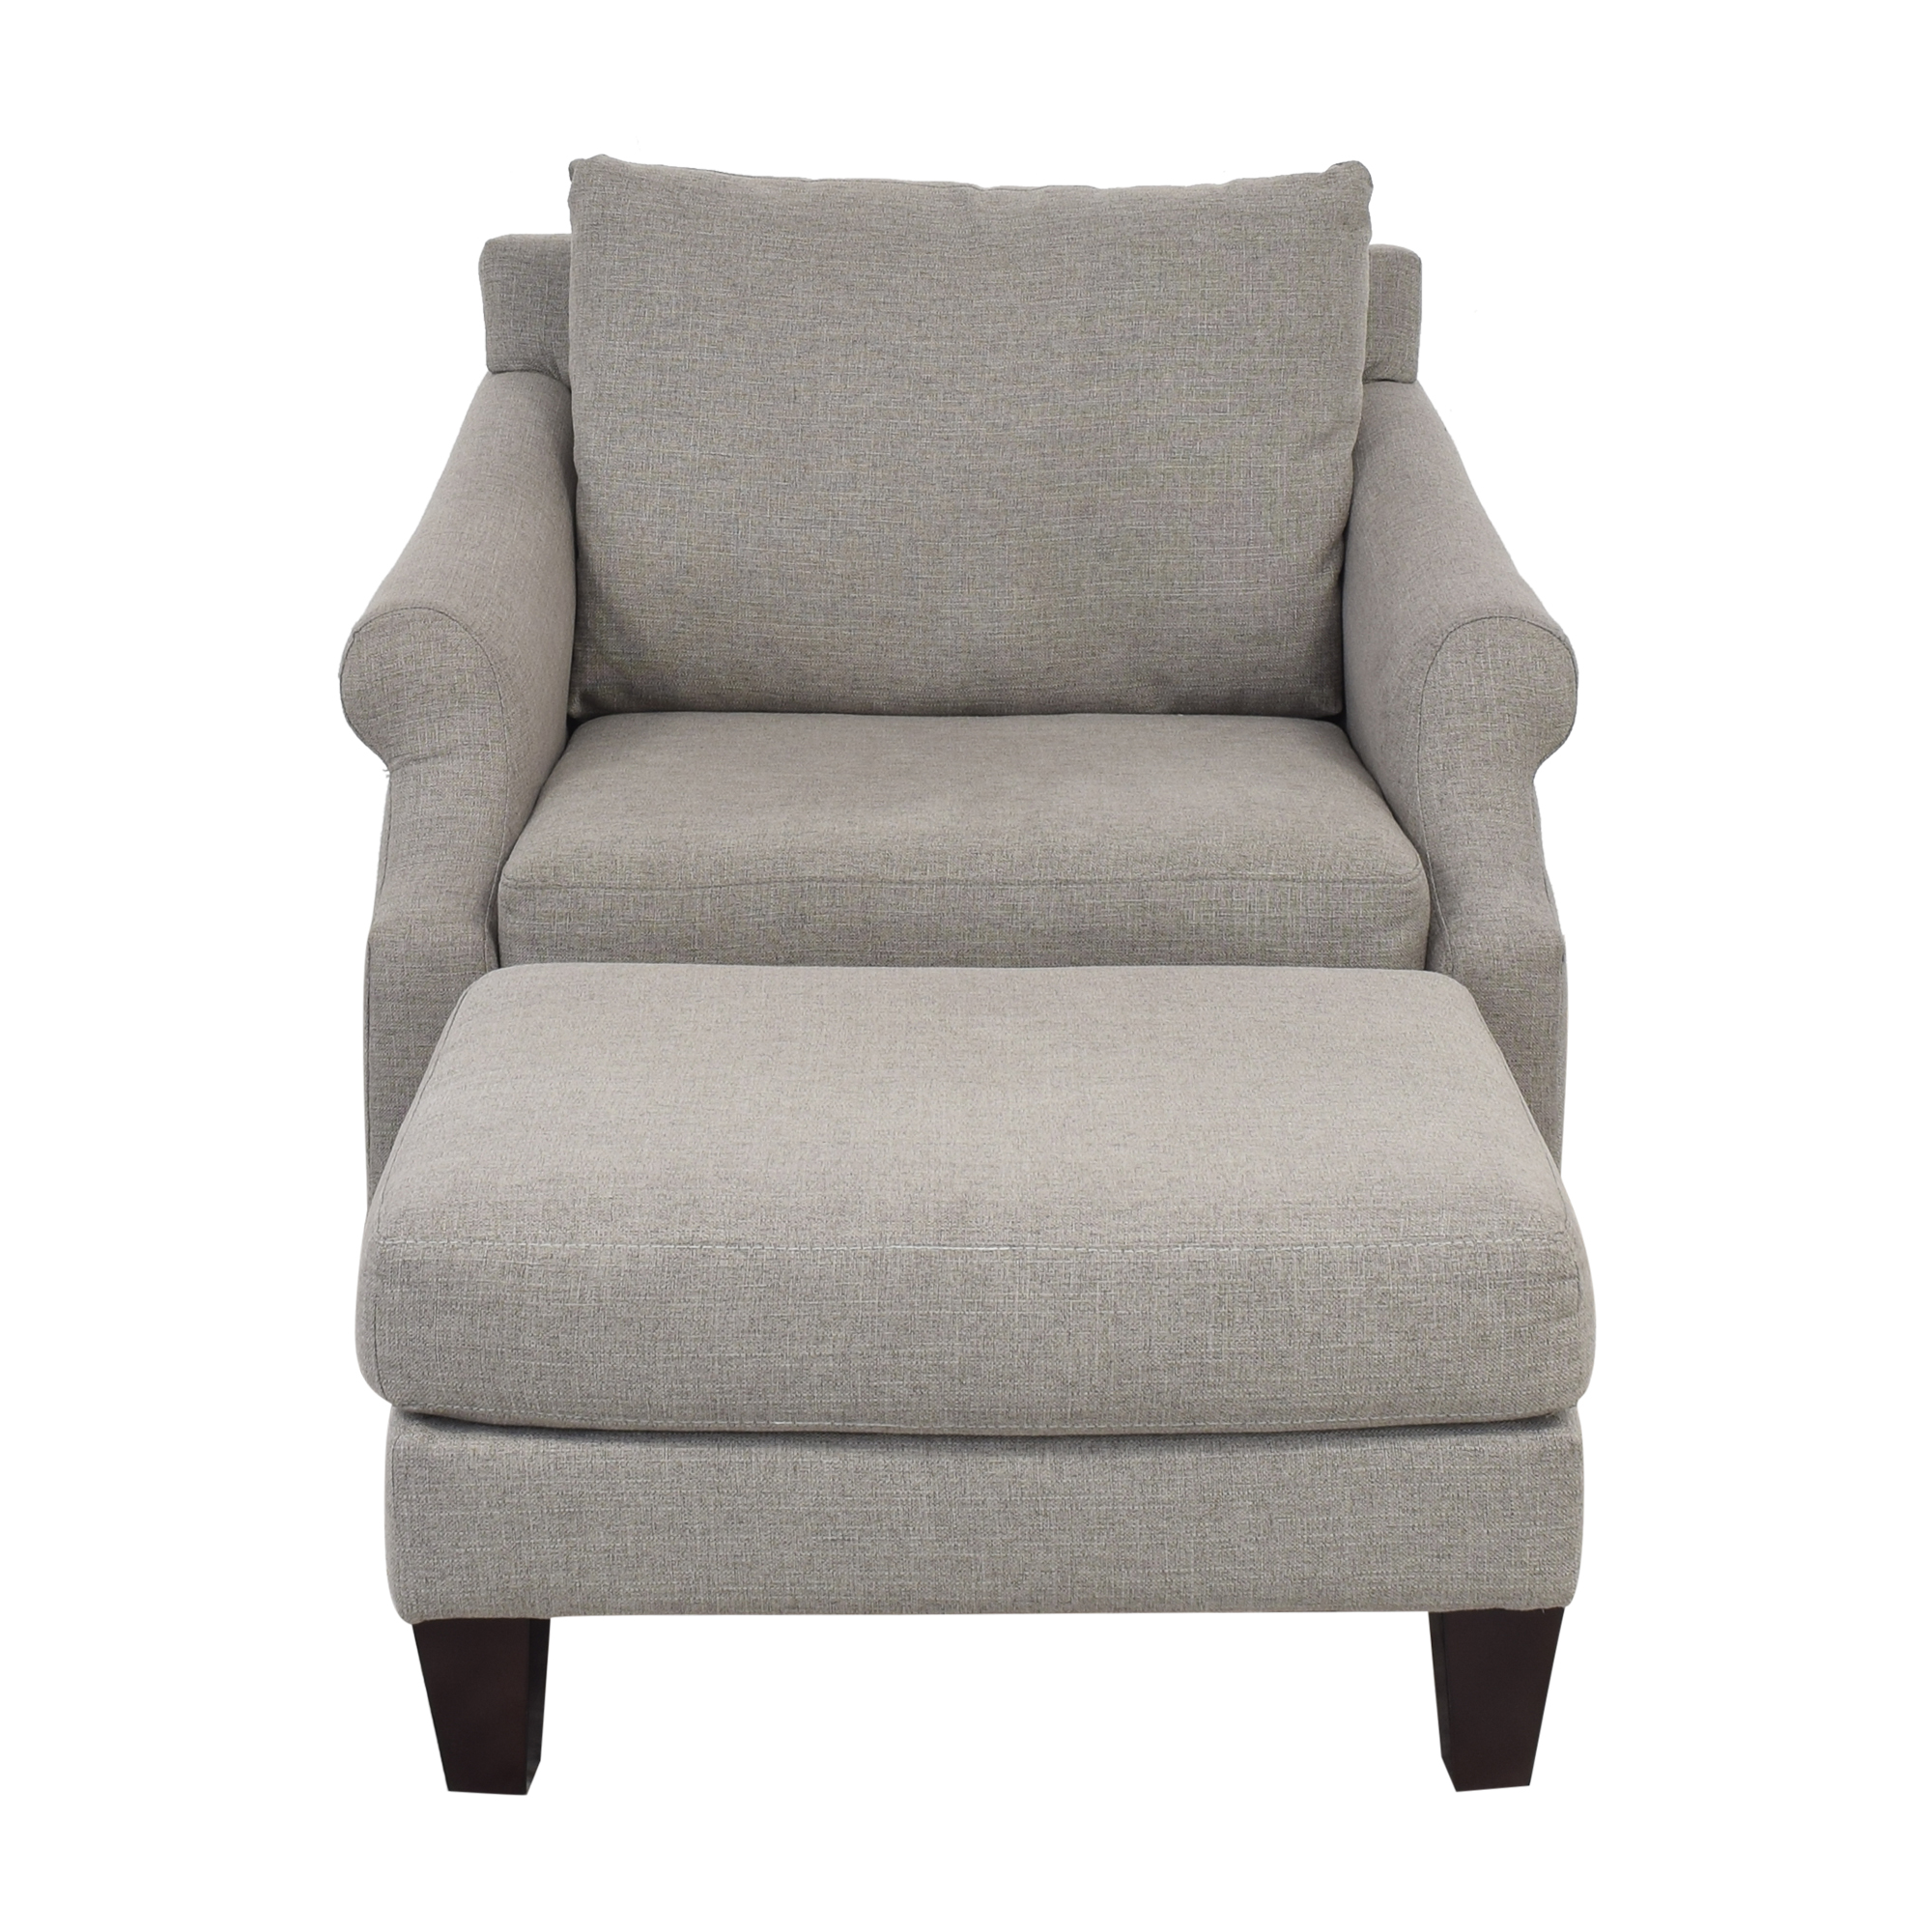 buy Raymour & Flanigan Raymour & Flanigan Anastasia Oversized Chair with Ottoman online